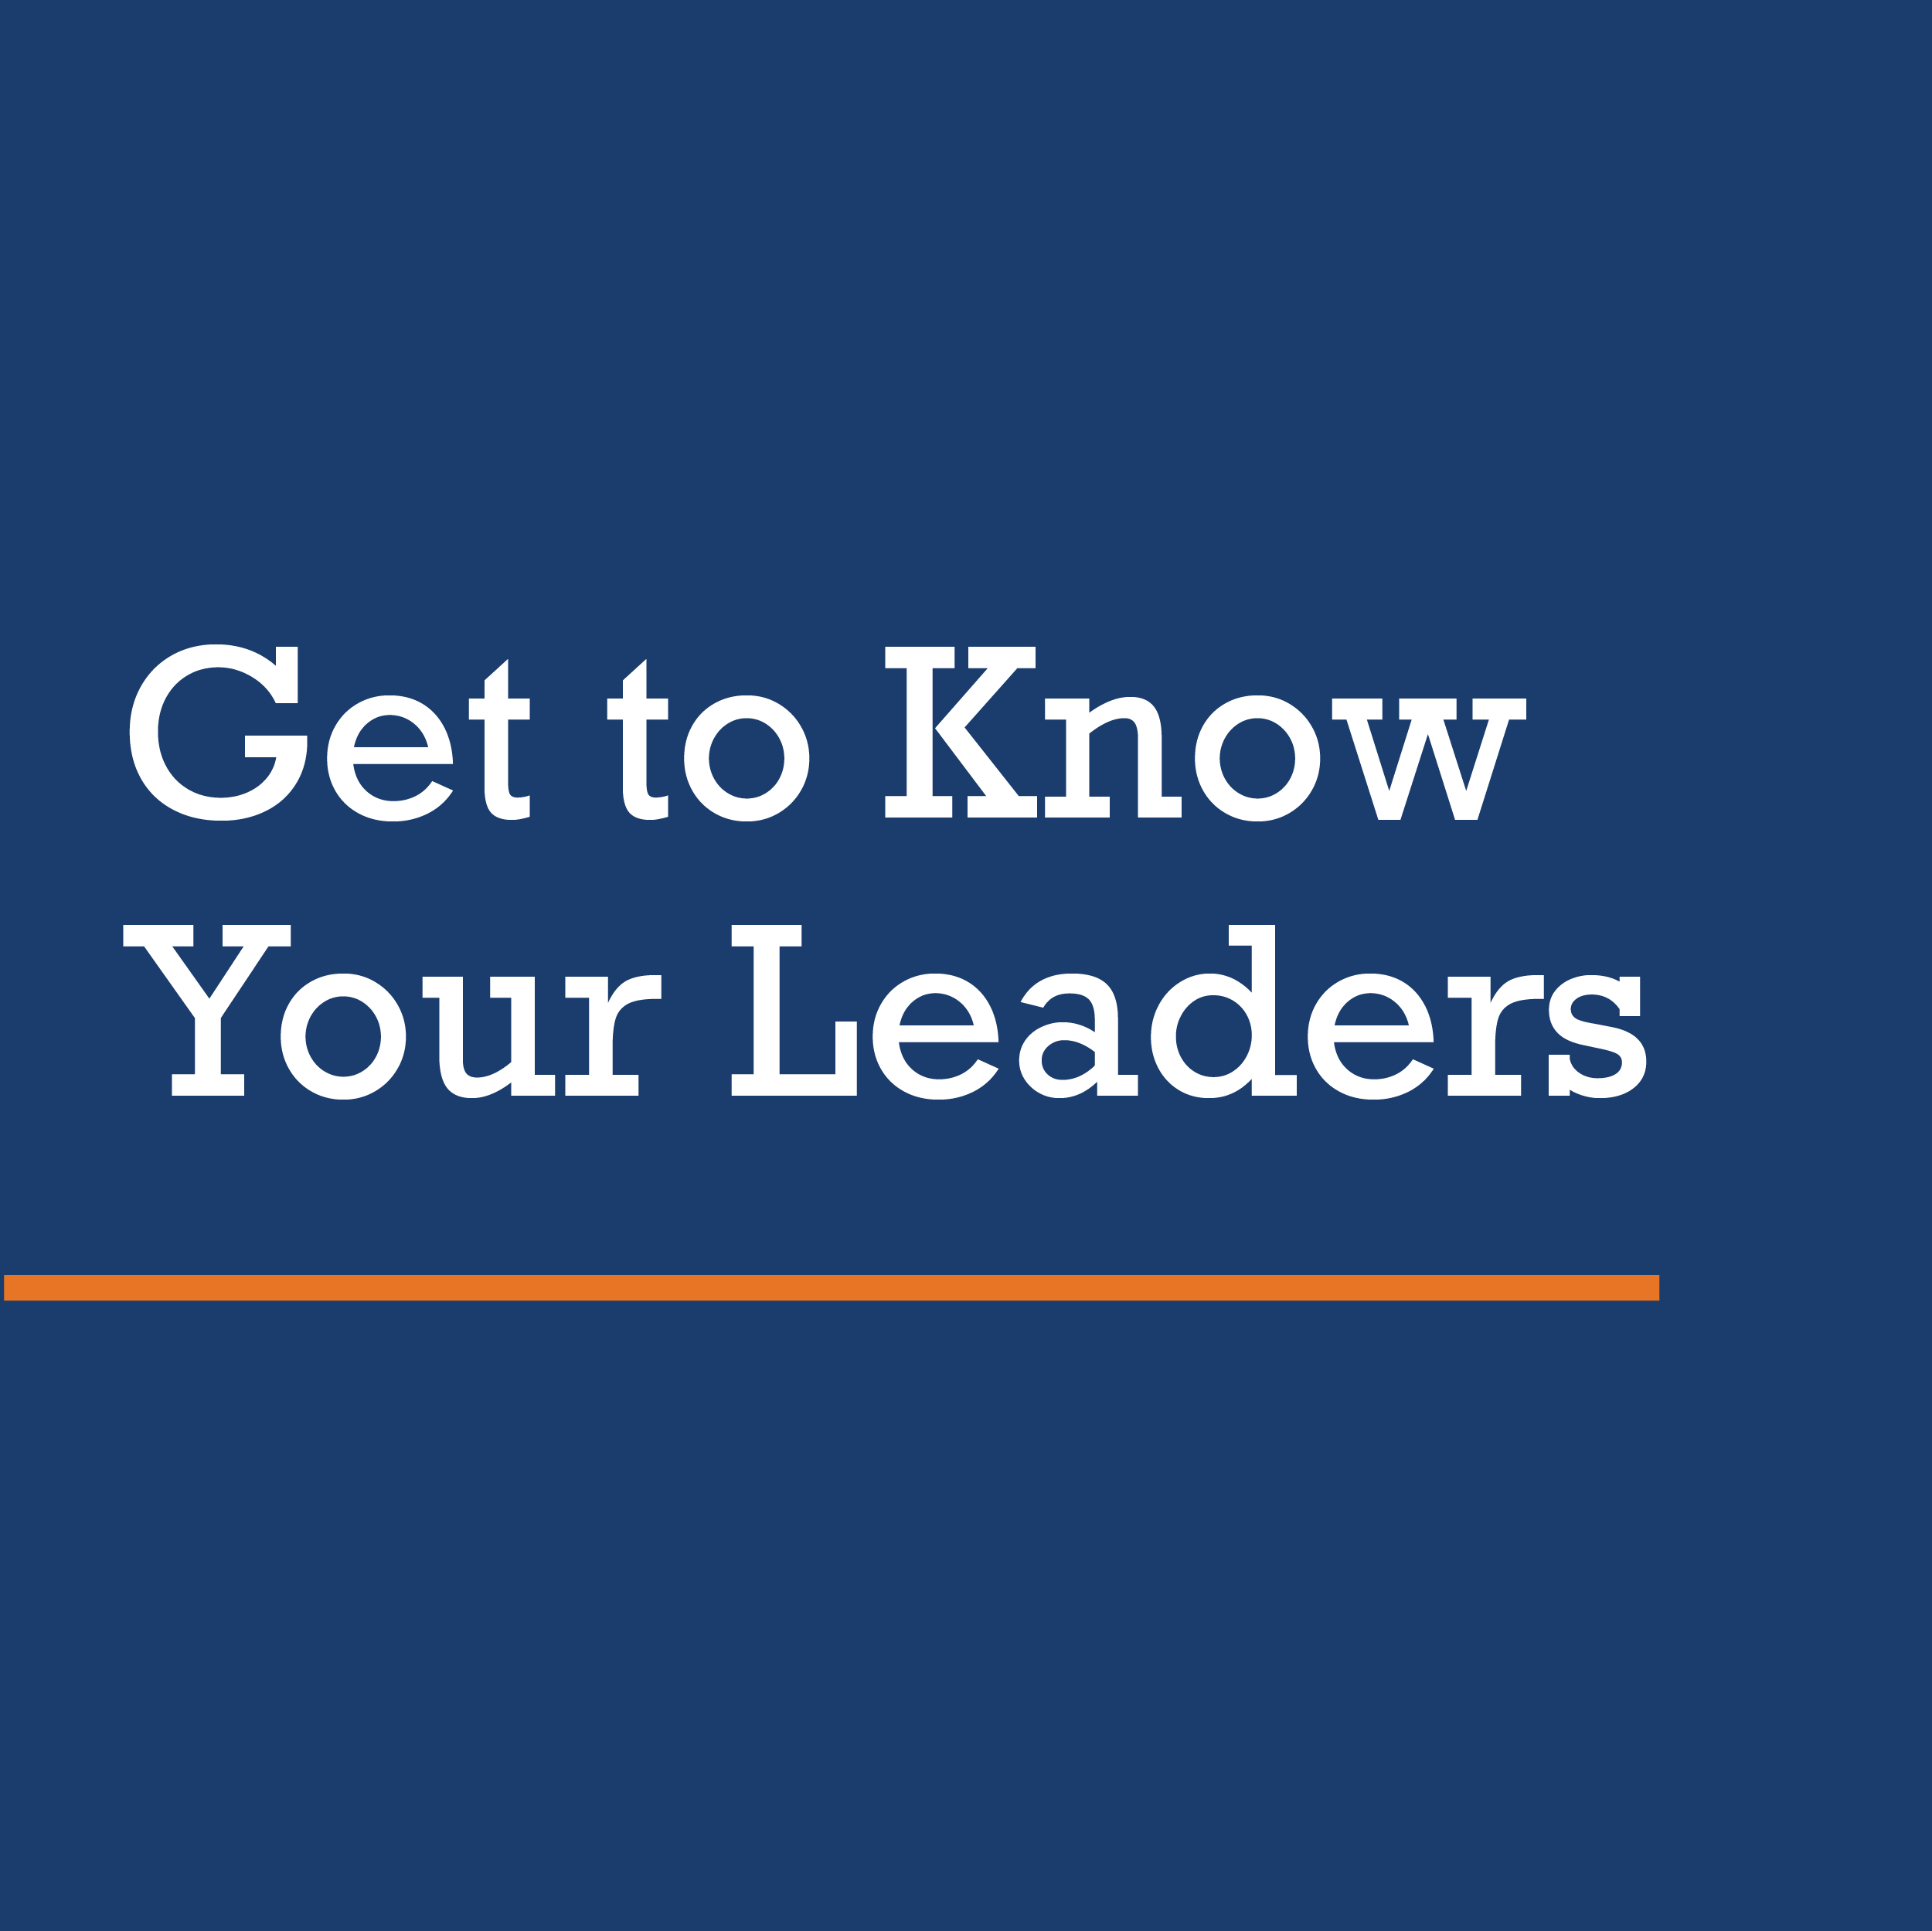 Get to know your leaders